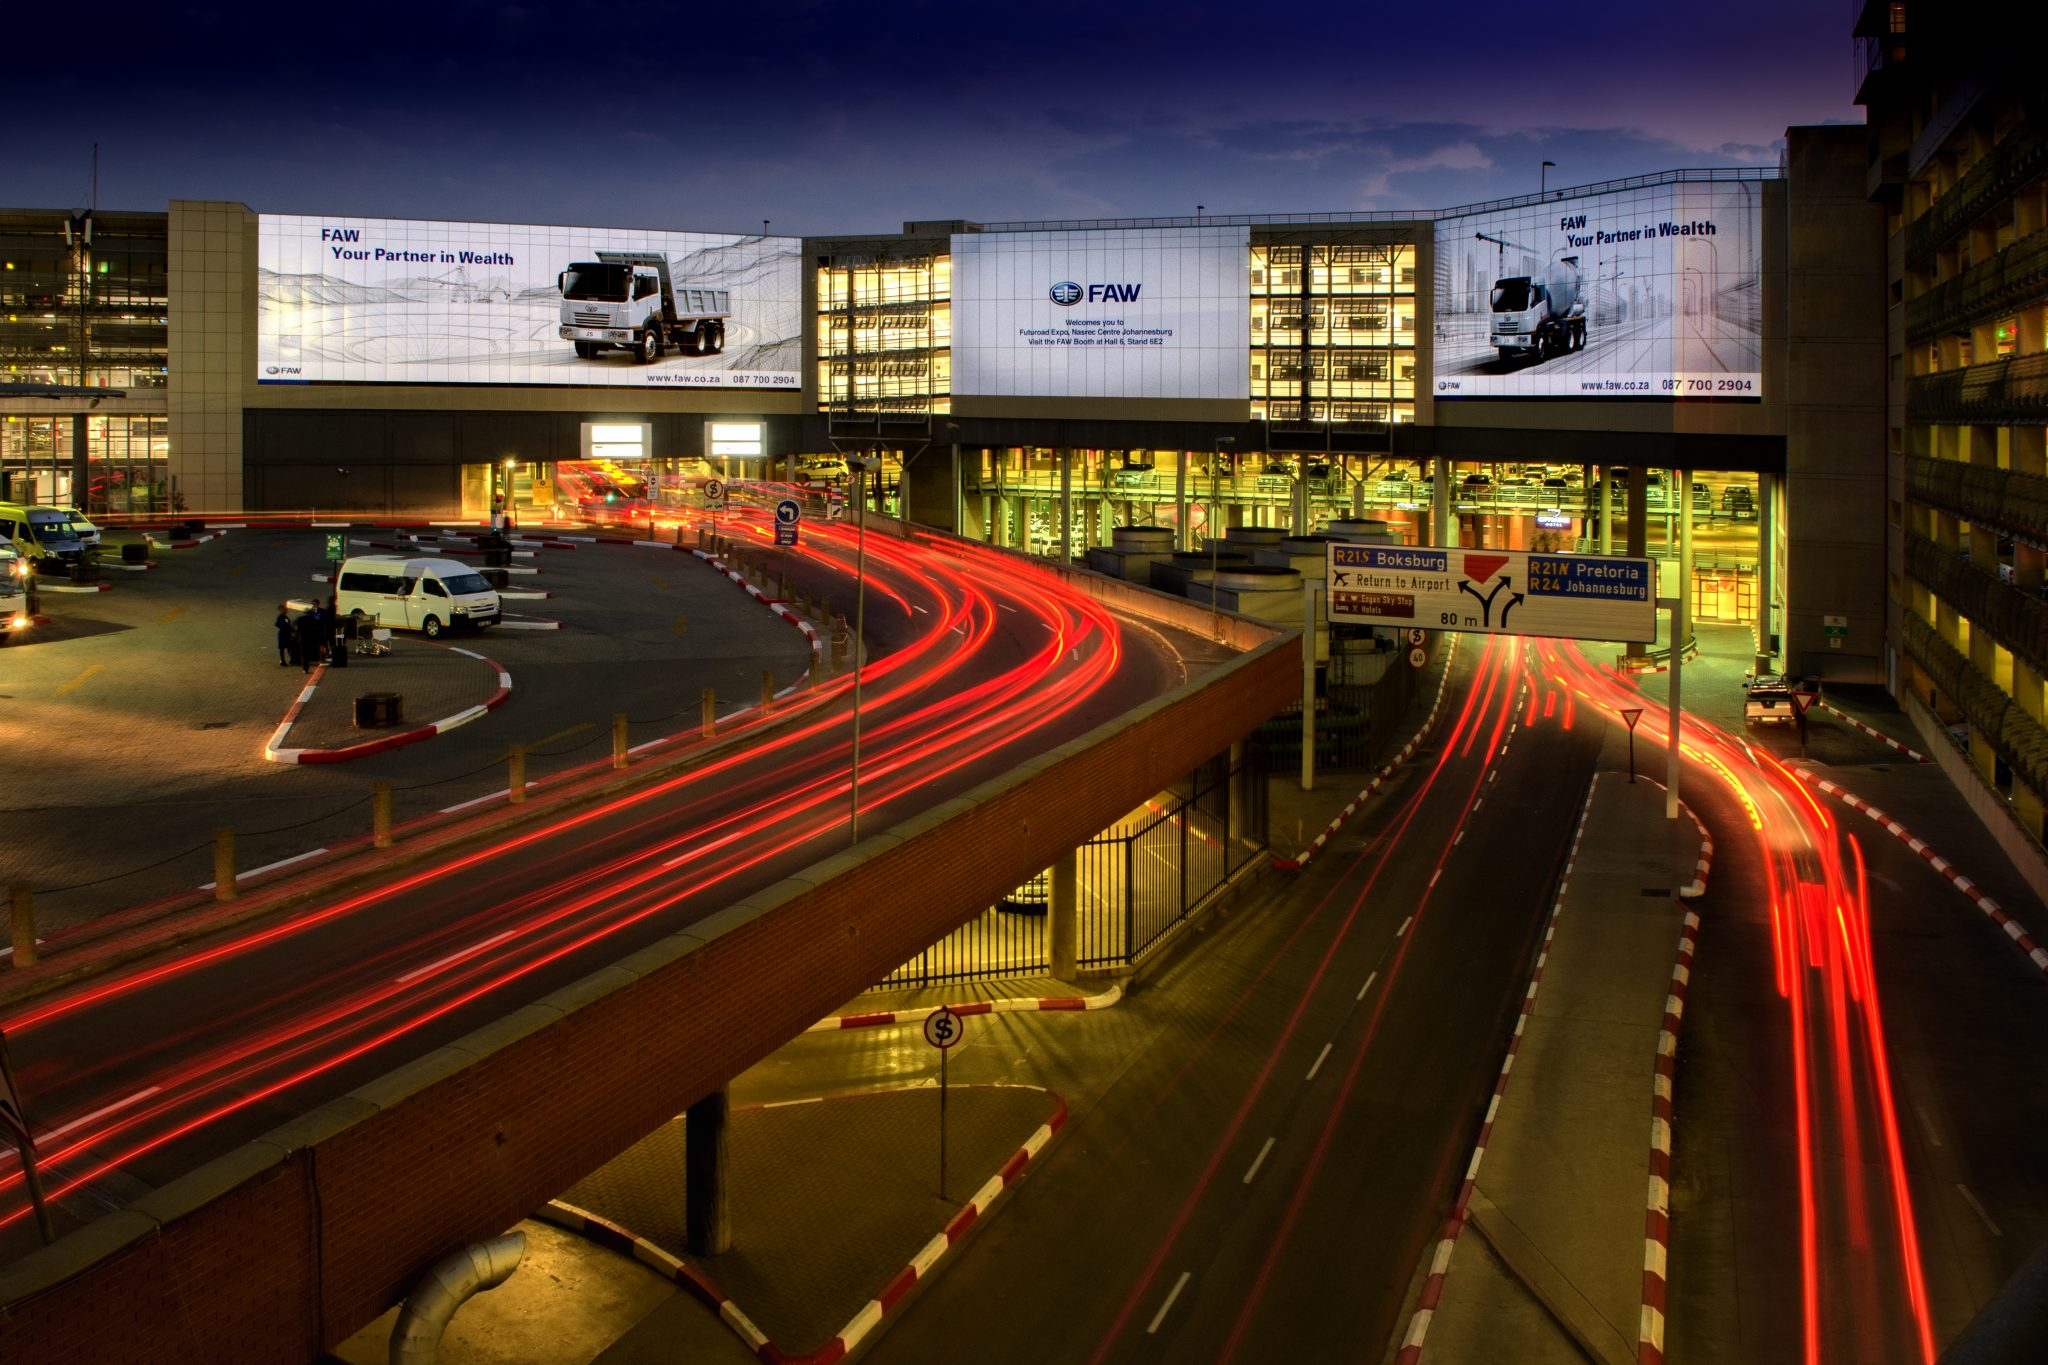 FAW drives its message home with Airport Ads at ORT